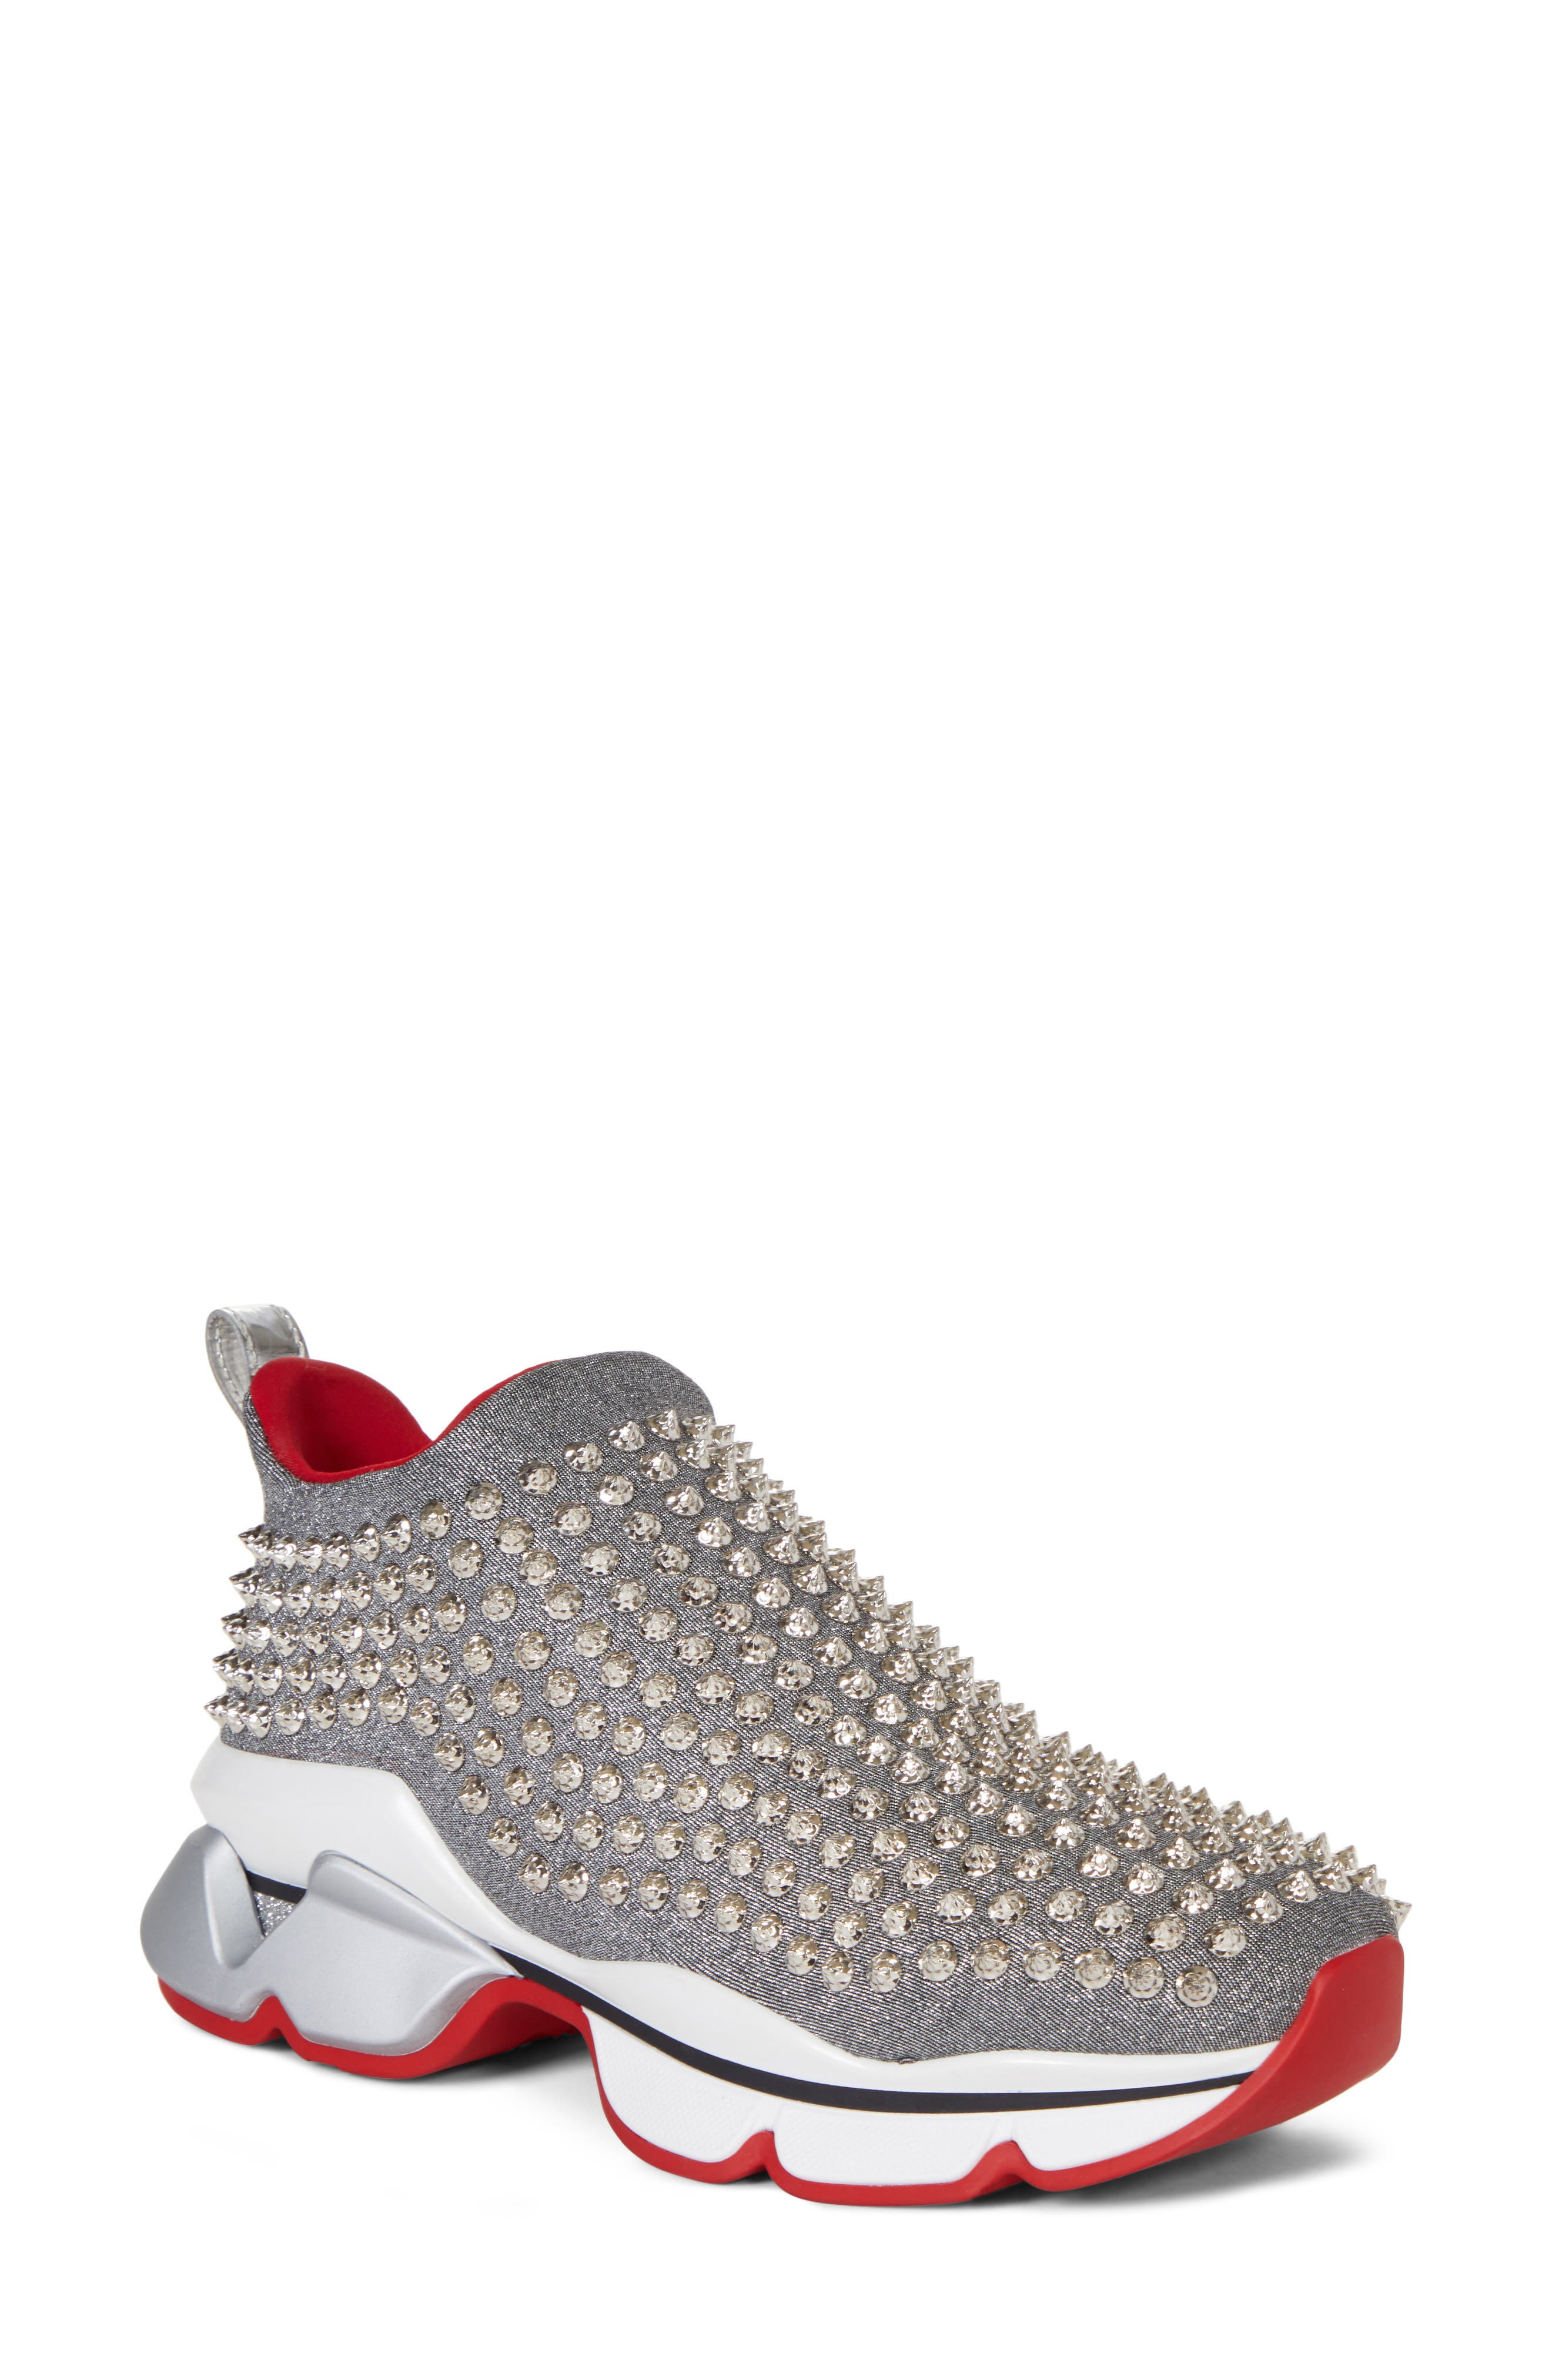 CHRISTIAN LOUBOUTIN,                             Spiky Sock-Knit Slip-On Sneaker,                             Main thumbnail 1, color,                             SILVER